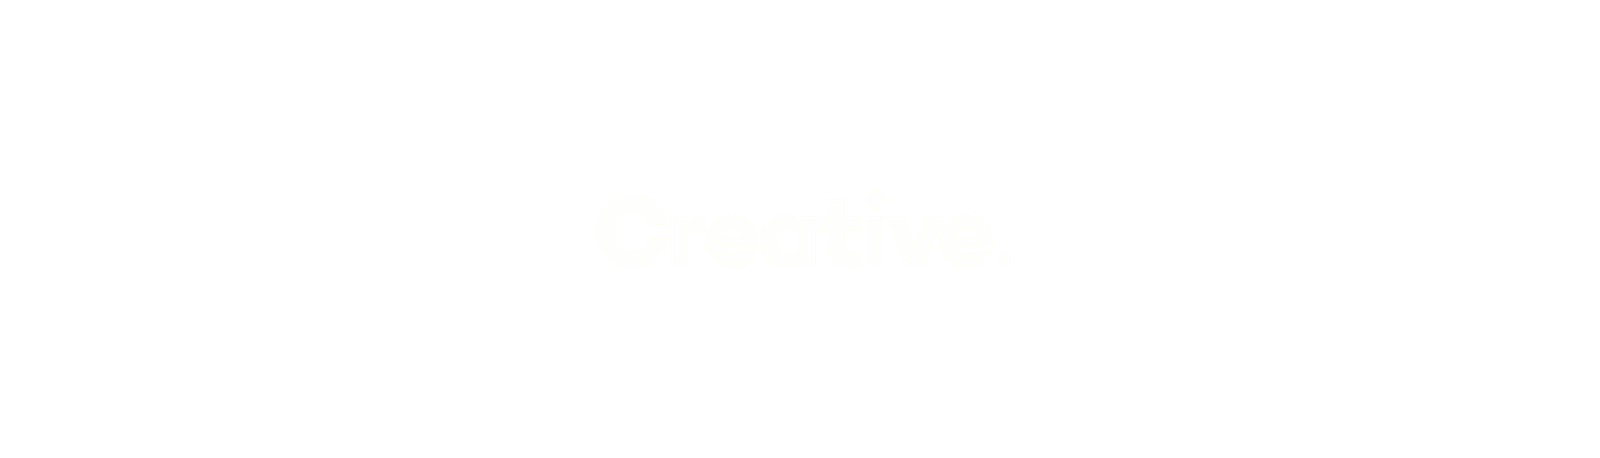 Creative white image png .png